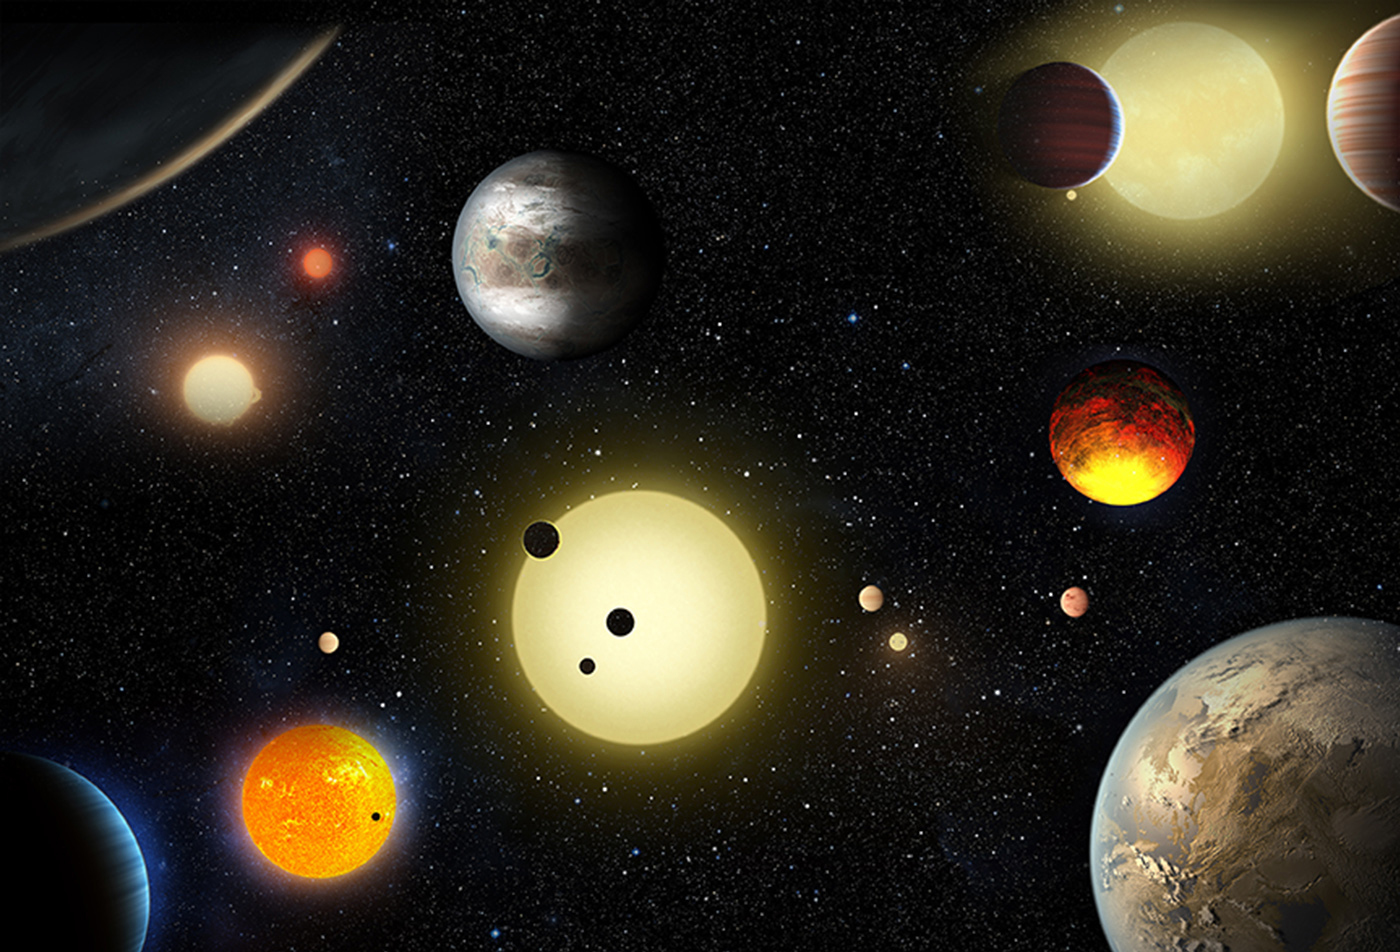 This artist's concept depicts some of the planetary discoveries made by NASA's Kepler Space Telescope. Tuesday's announcement more than doubles the number of verified planets discovered by the Kepler mission. W. Stenzel/NASA